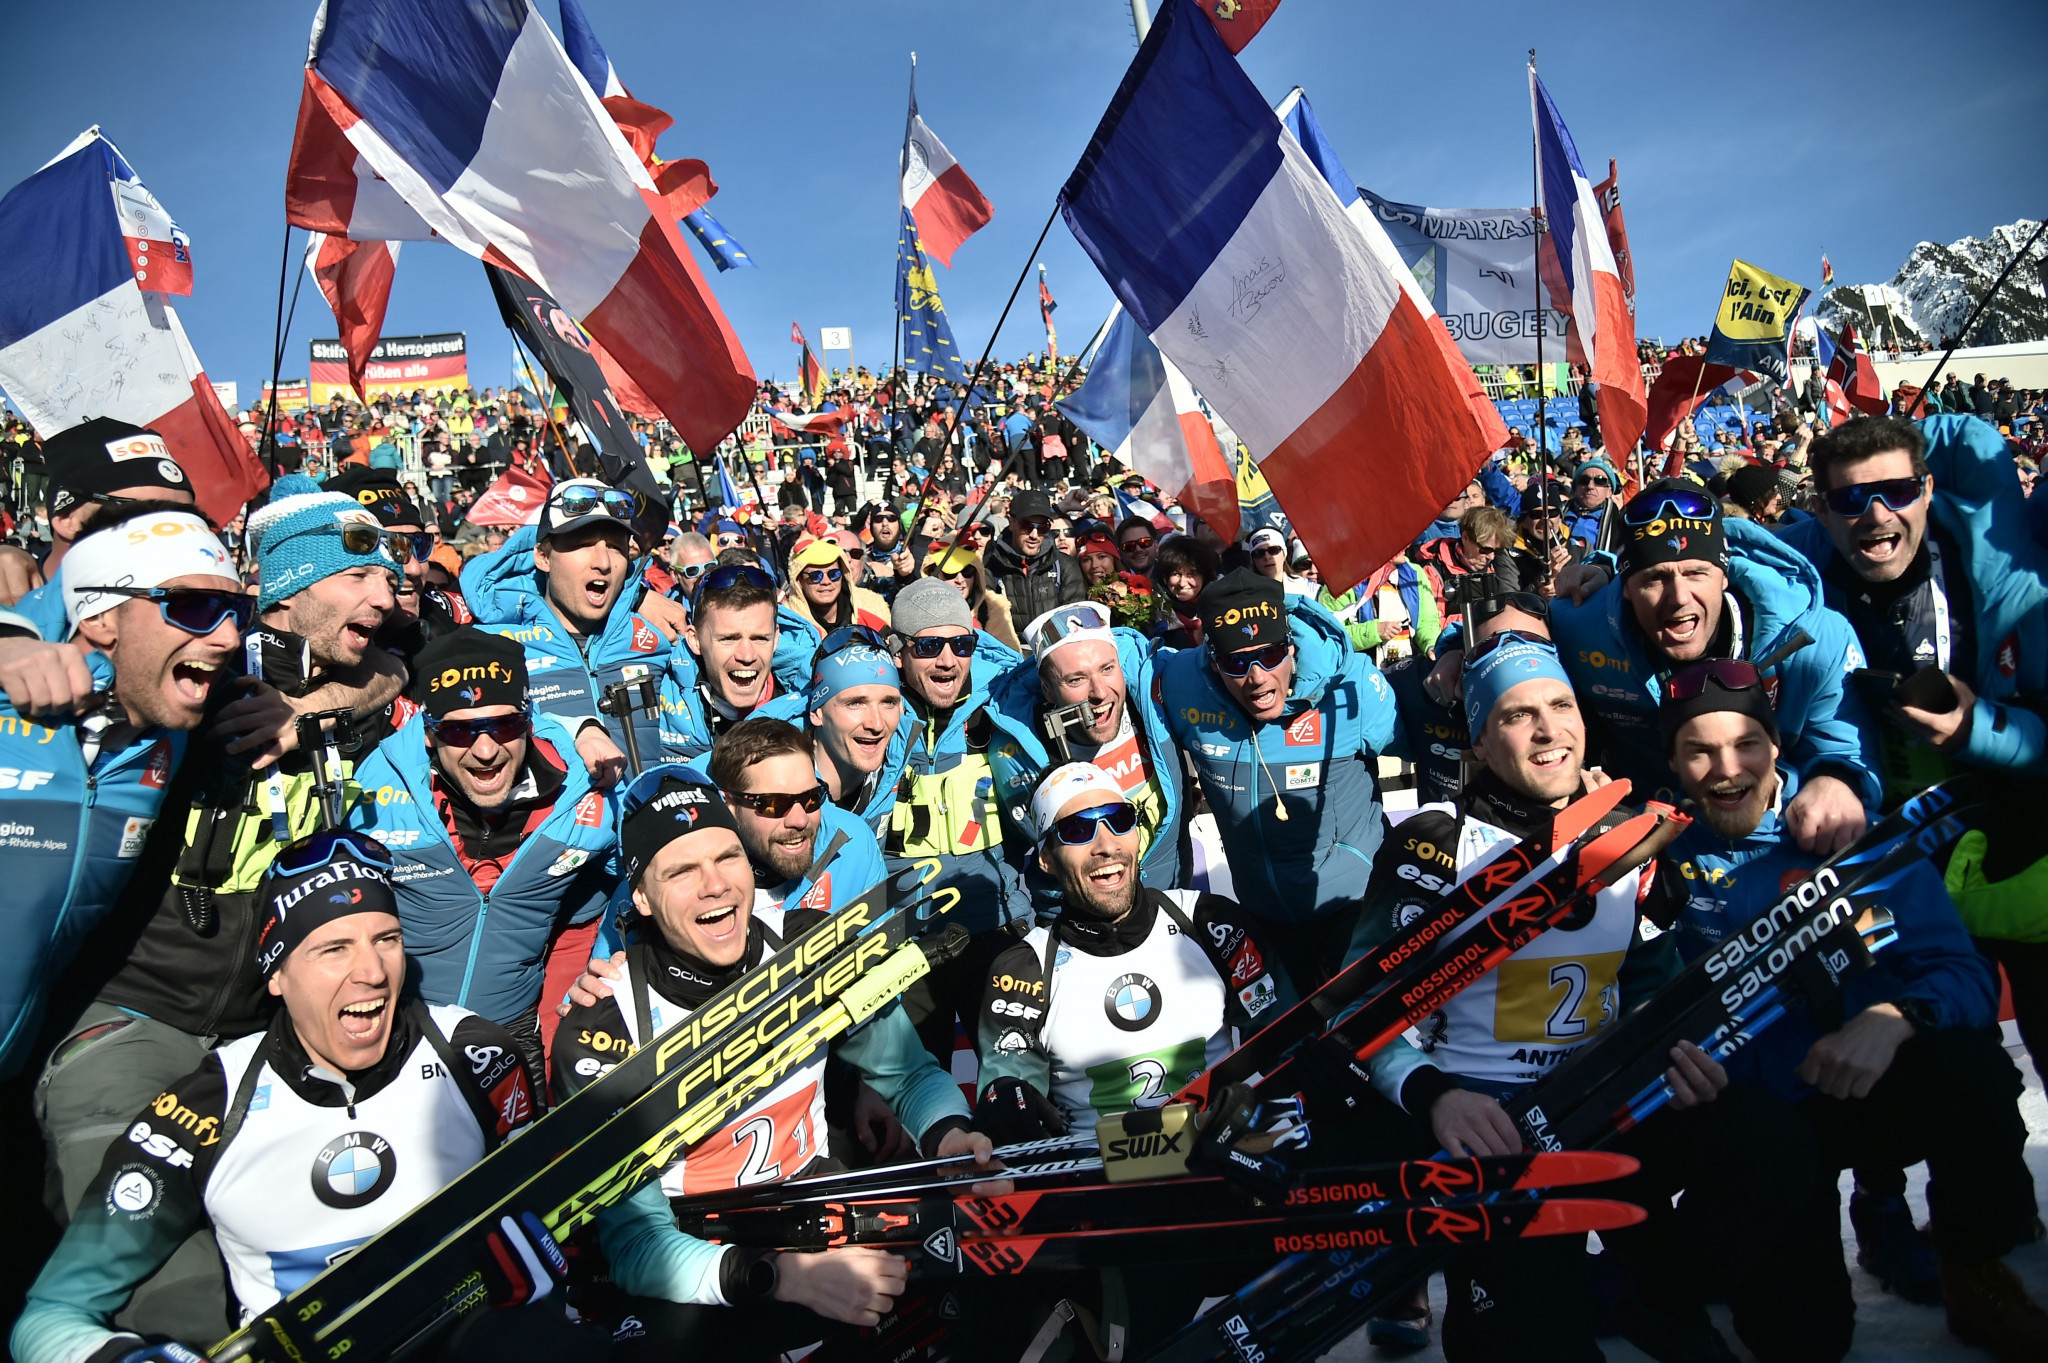 France won the men's event to deny Norway a clean sweep of the relays ©Getty Images